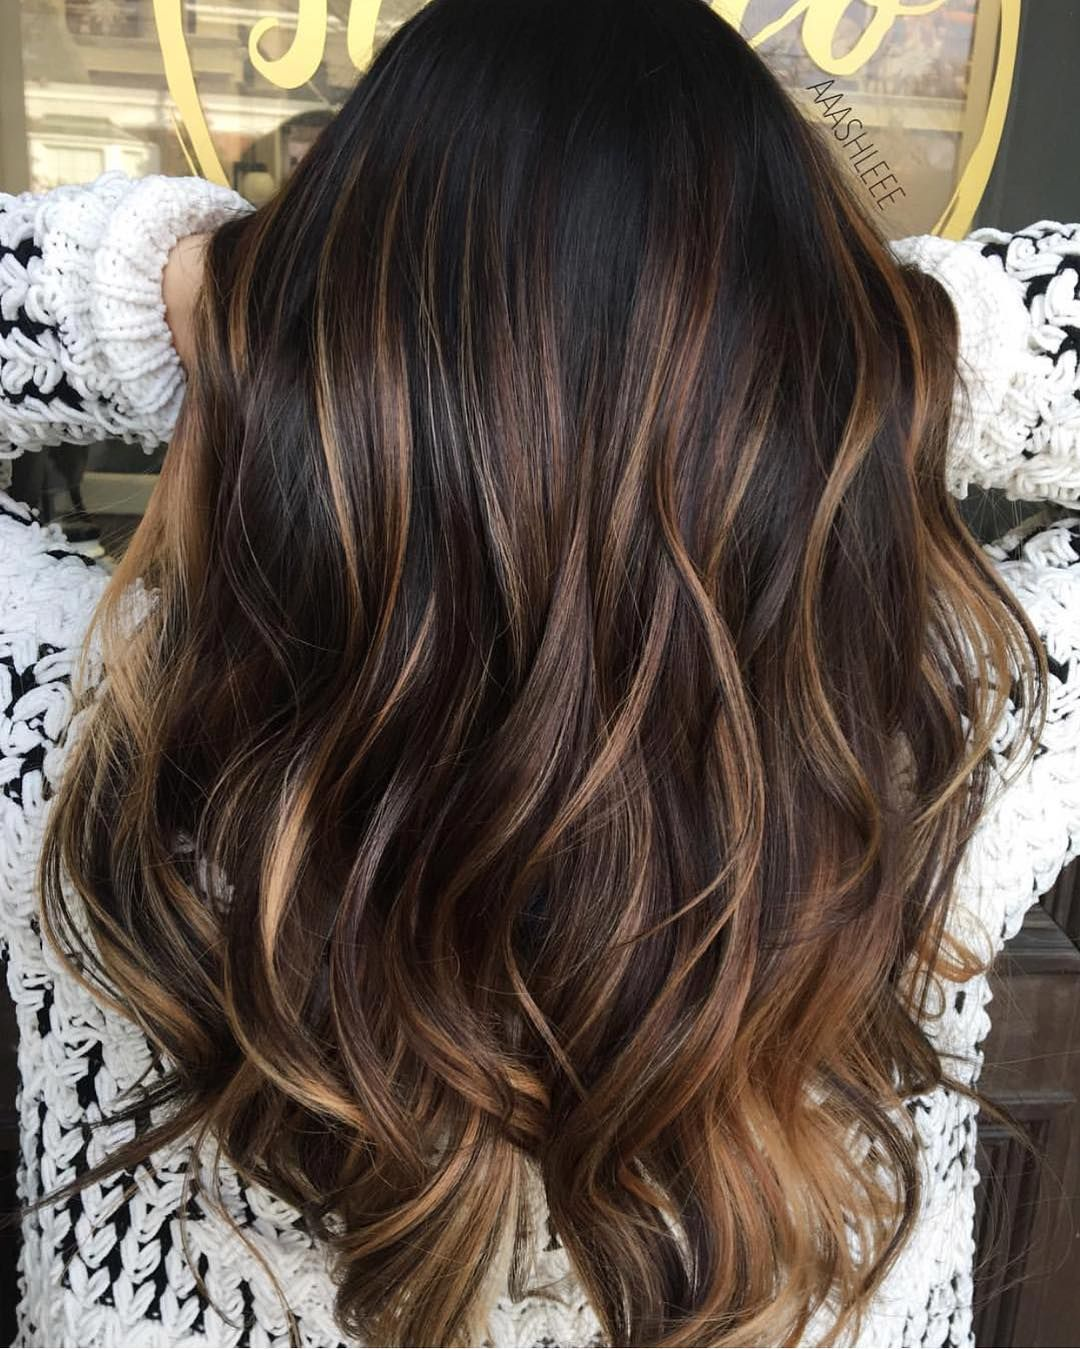 21 Balayage Dark Brown Hair Color Ideas For Changing Up Your Style Bala Dark Hair With Highlights Dark Brown Hair Balayage Darkest Brown Hair With Highlights